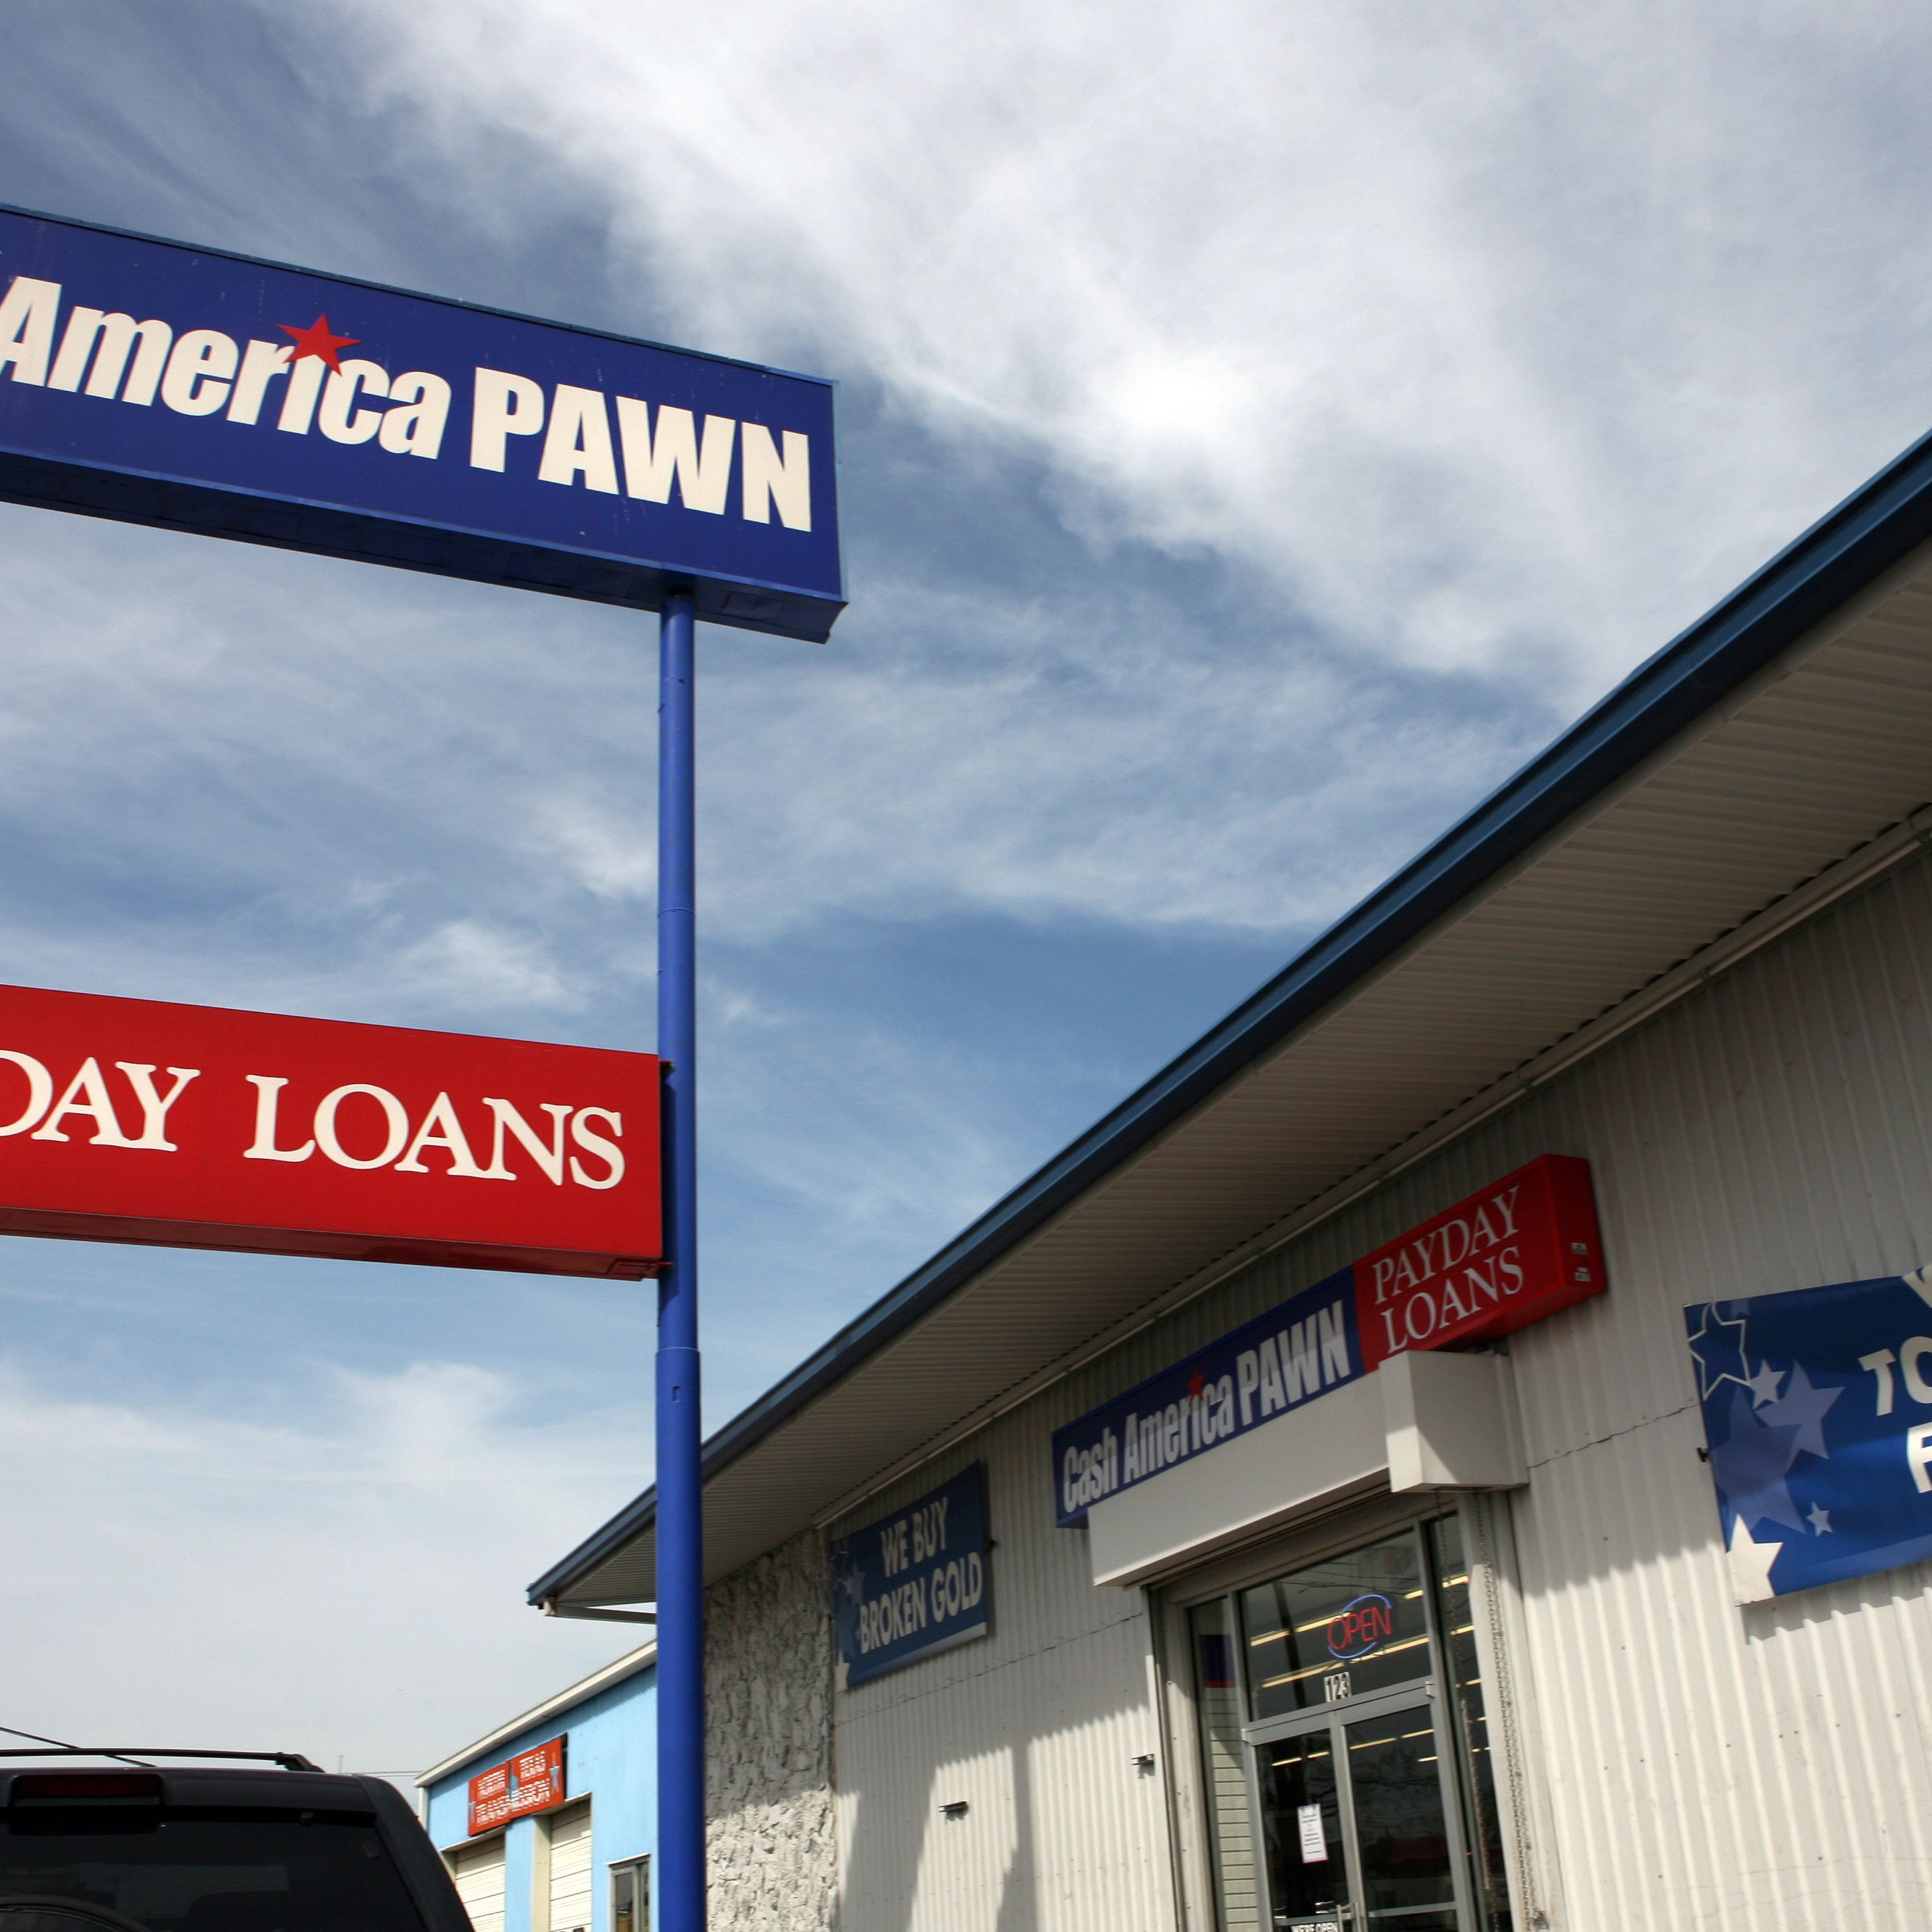 Why Payday Loans and Cash Advances Are So Bad